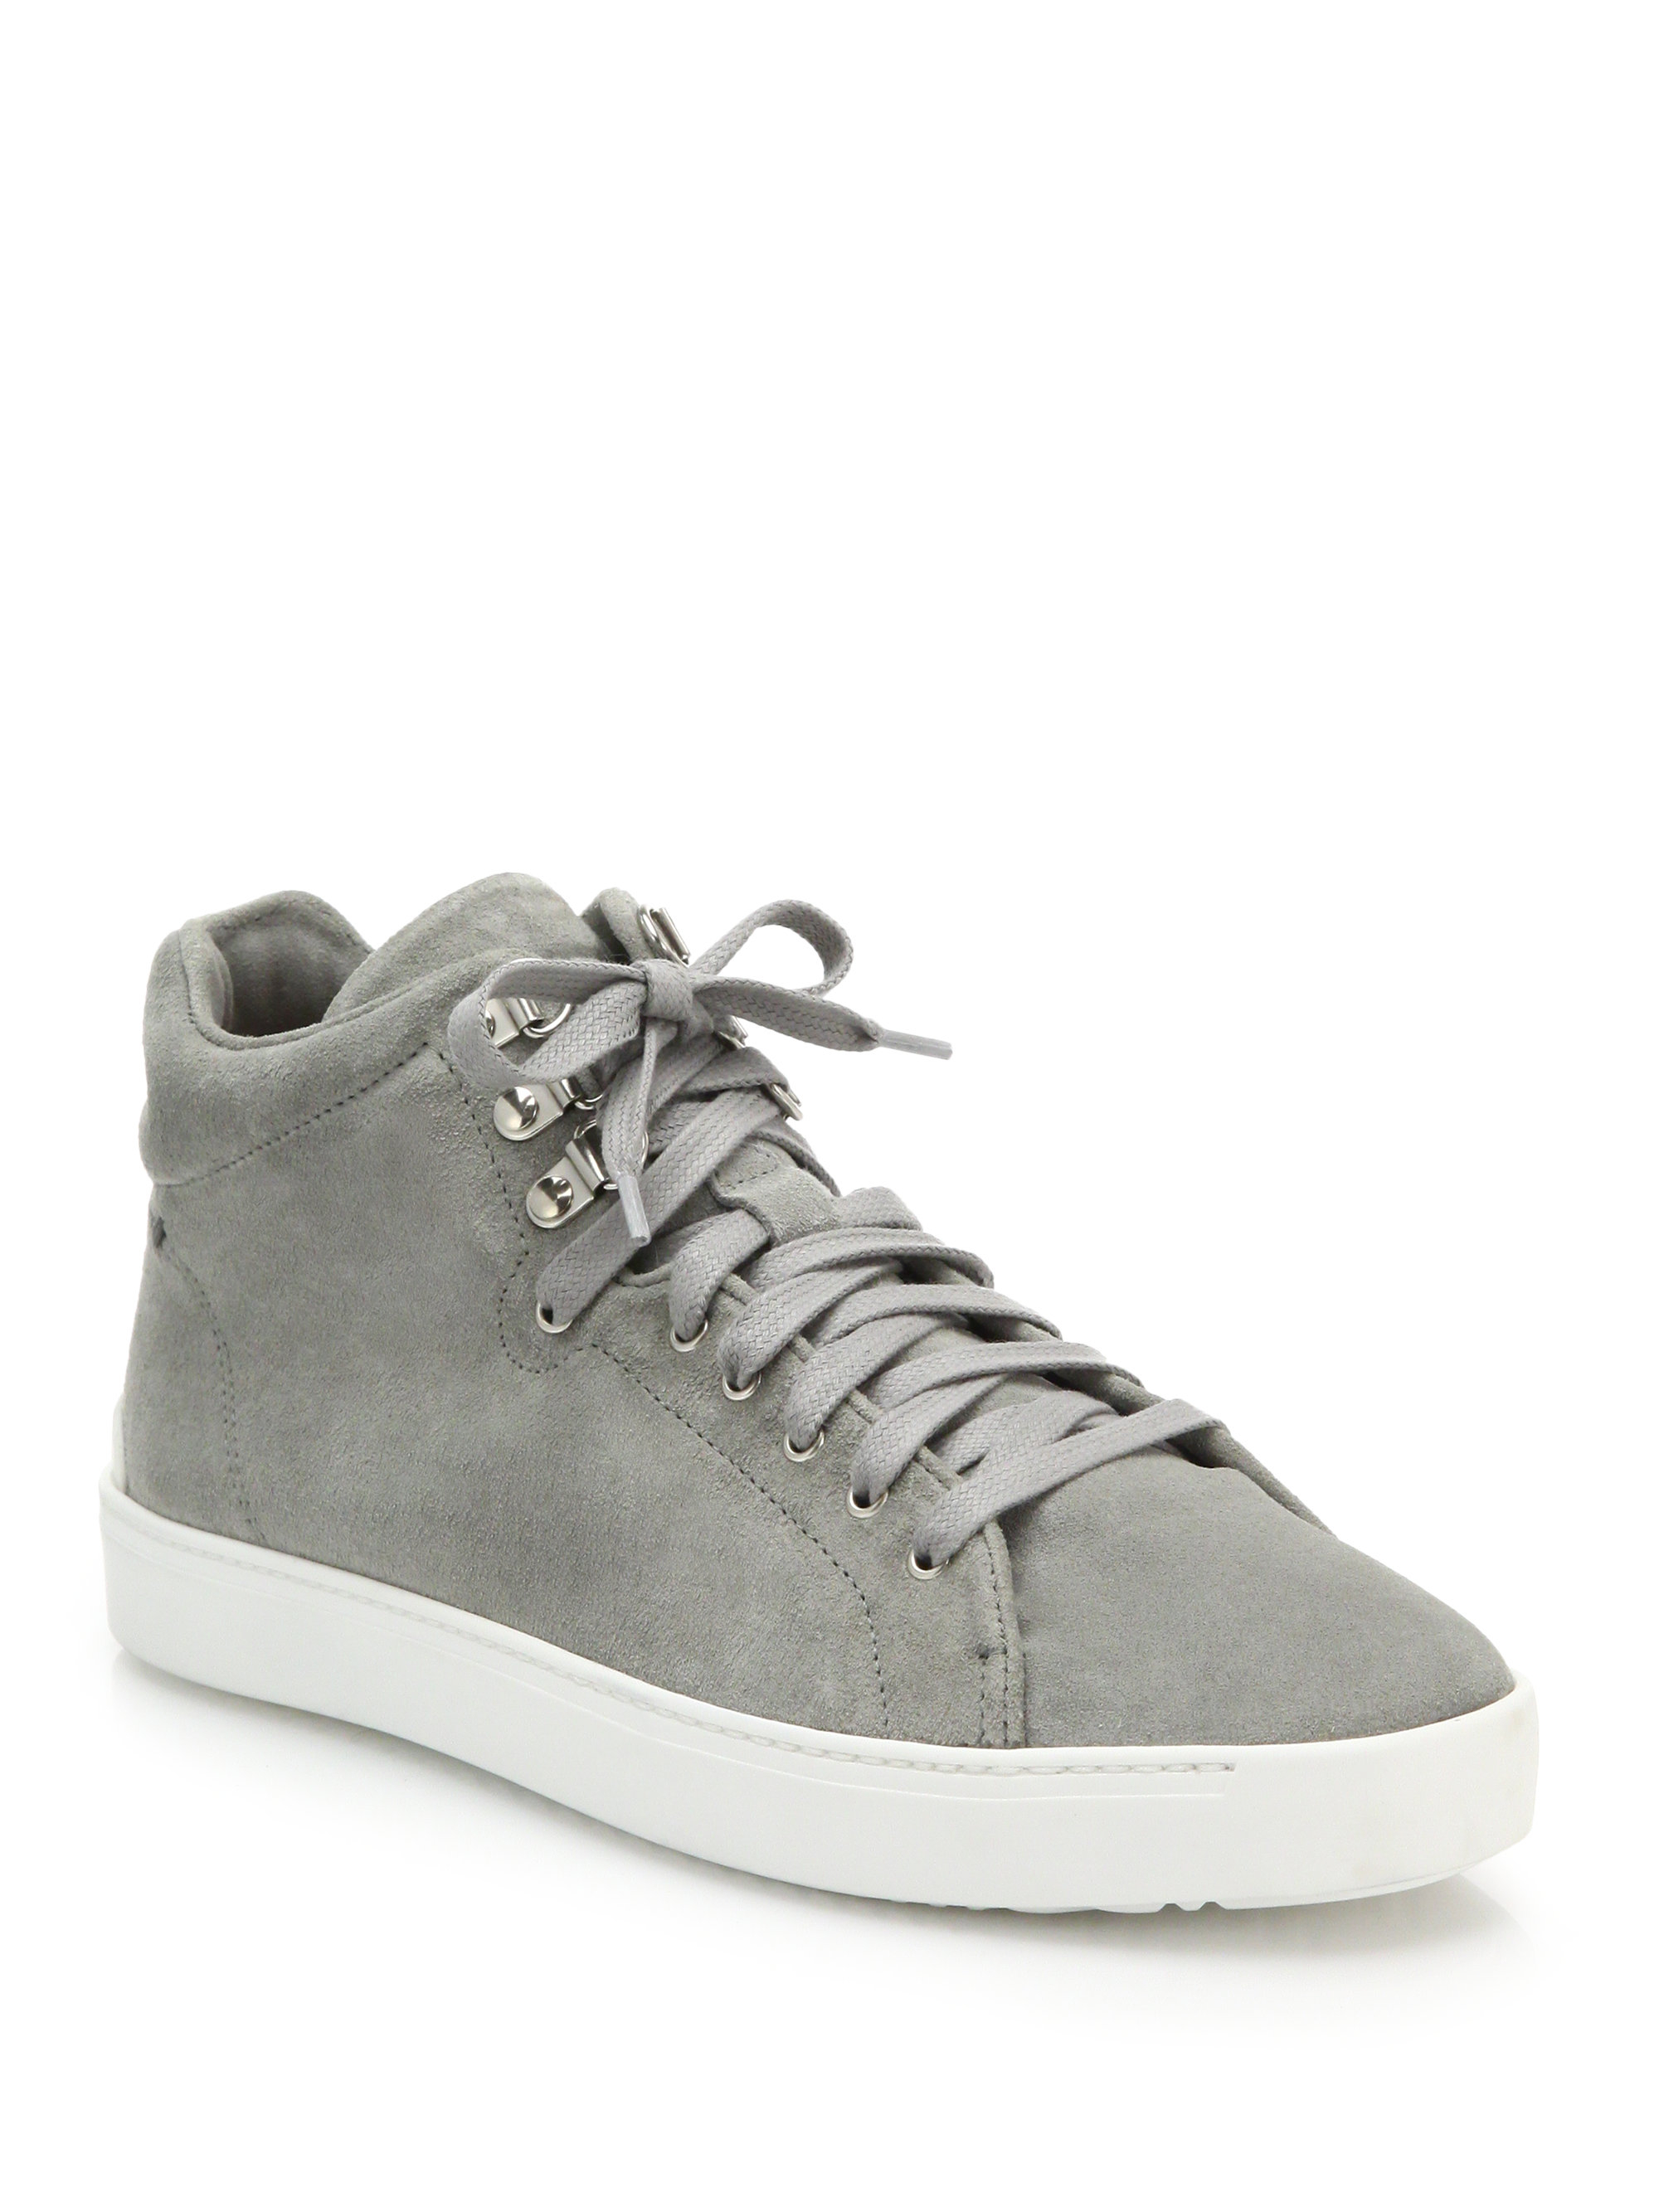 4cb8a32089ef31 Lyst - Rag   Bone Kent Suede High-top Sneakers in Gray